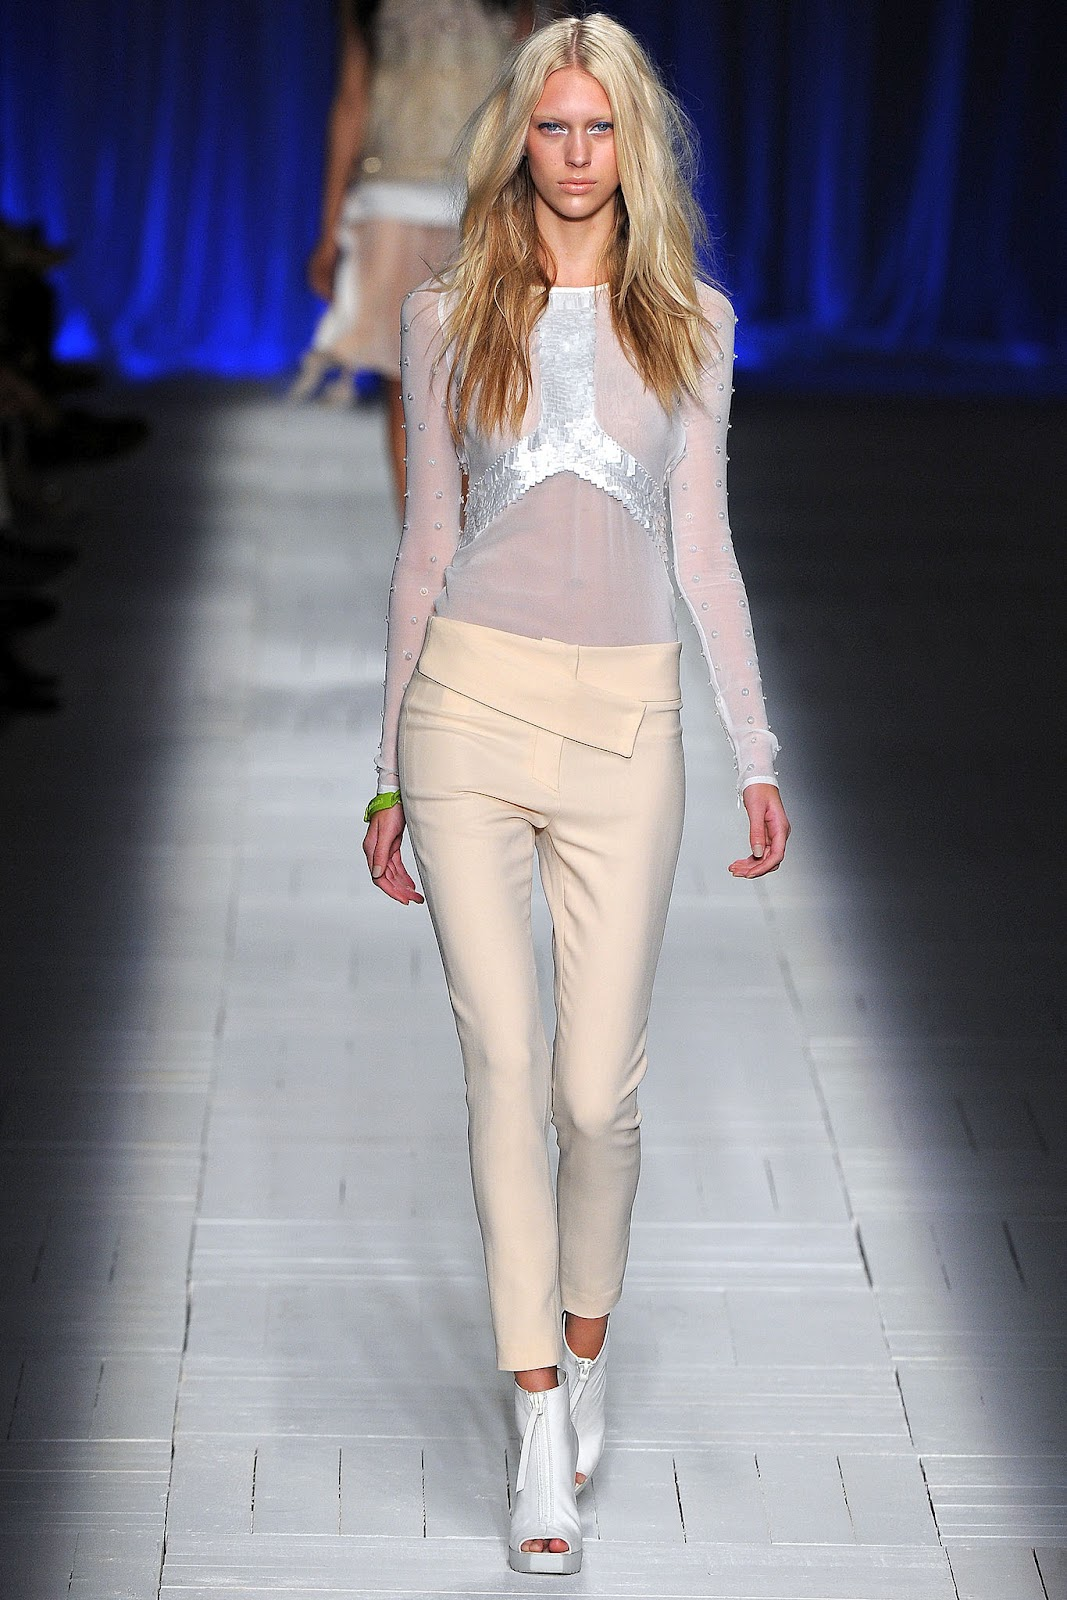 Just Fashion Official: Just. Love. Fashion.: More Favs From Fashion Week